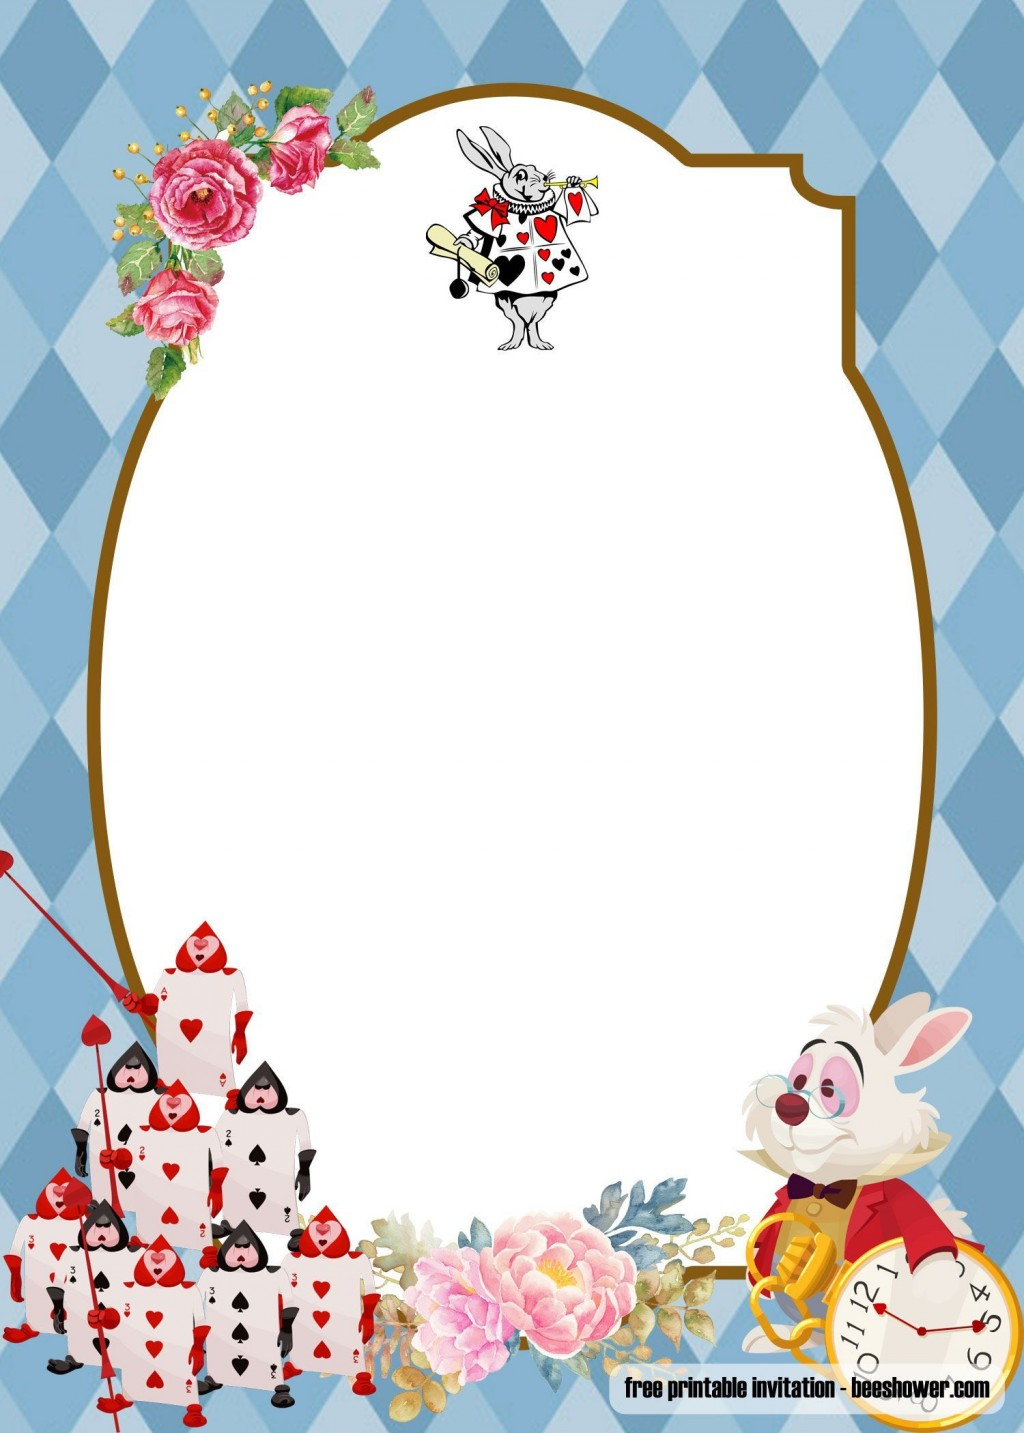 006 Staggering Alice In Wonderland Birthday Party Invitation Printable Free Highest Clarity Large